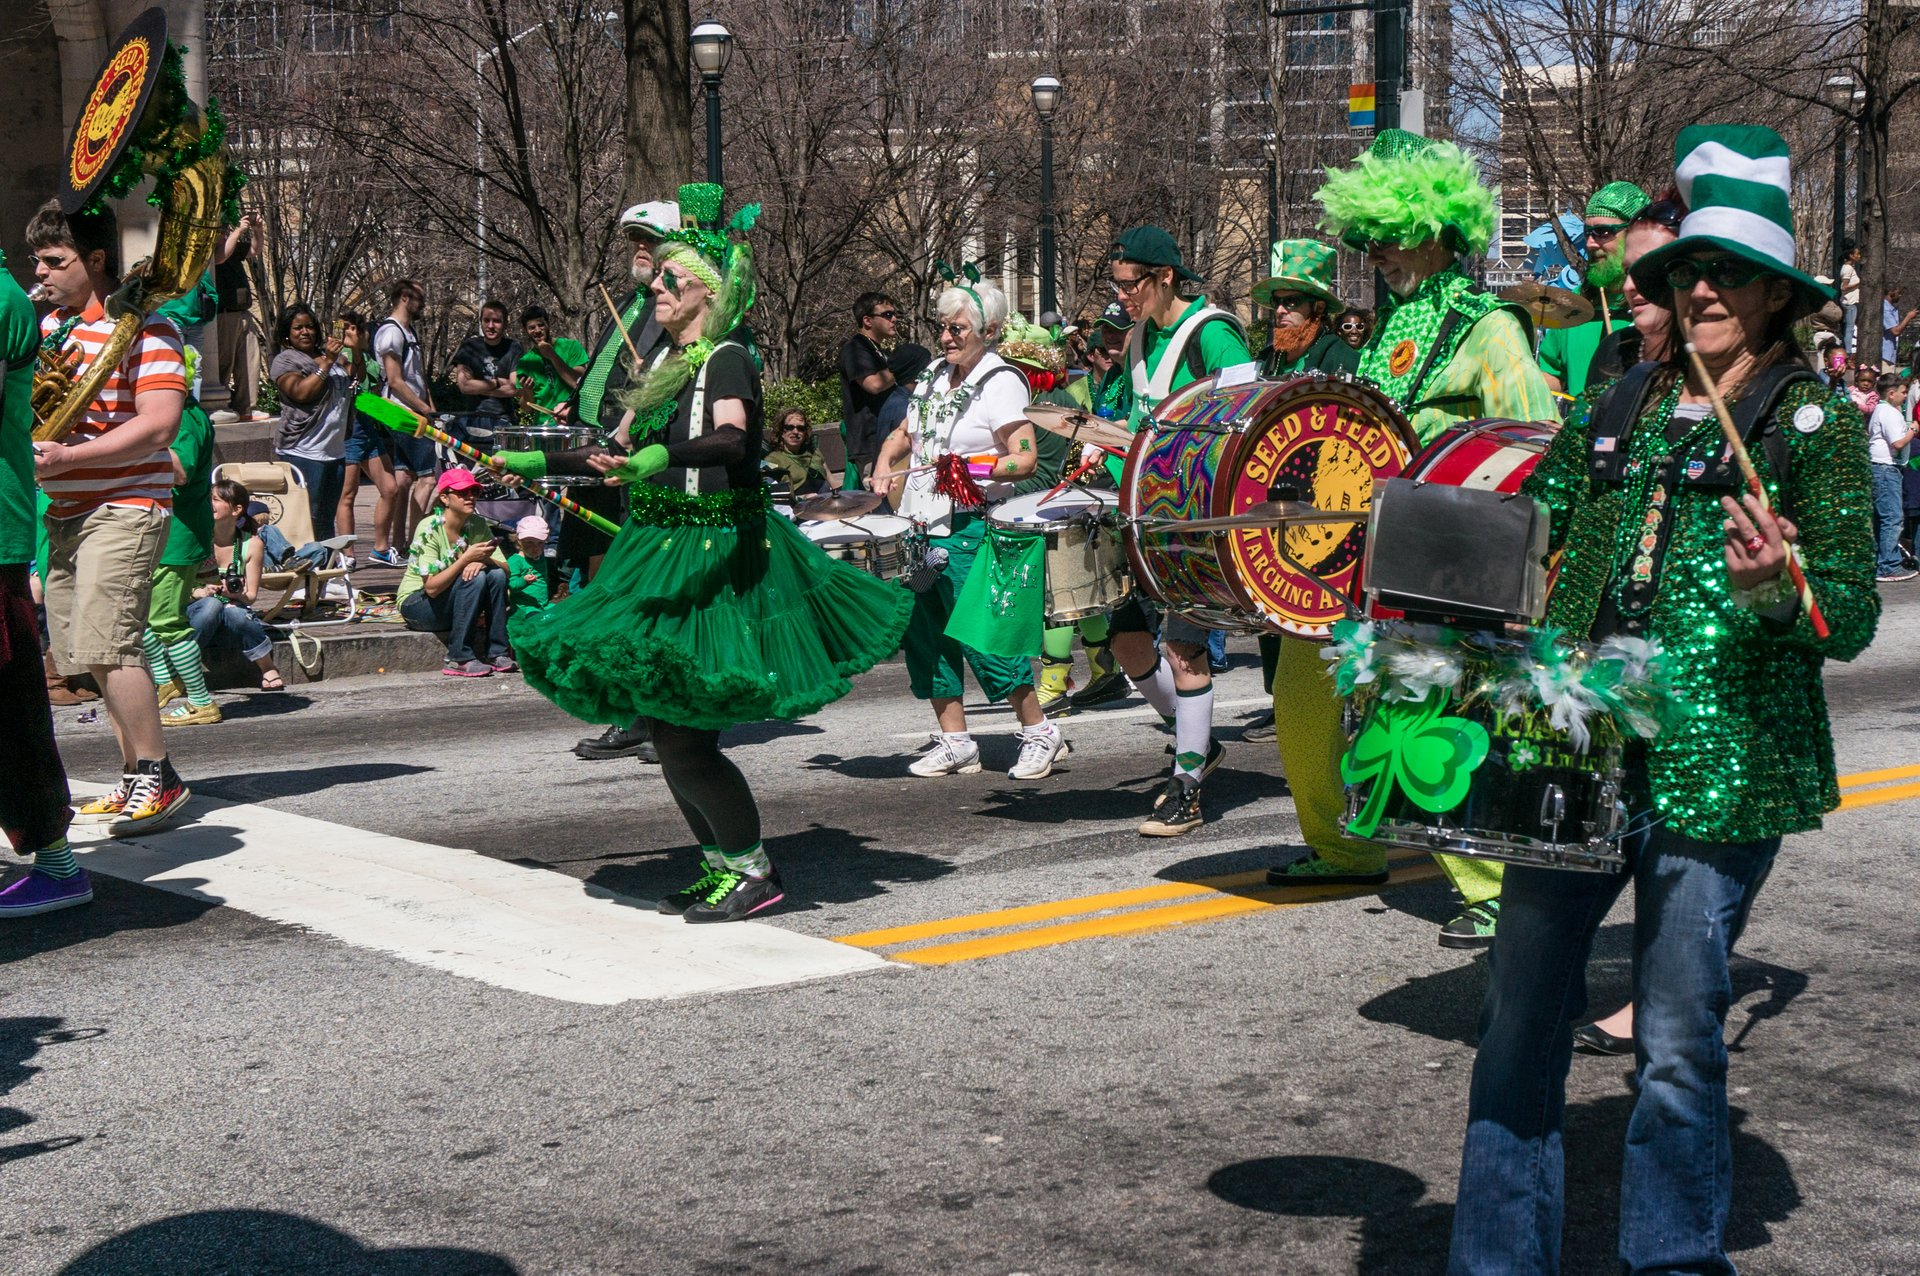 Best time to see Atlanta St. Patrick's Parade 2020